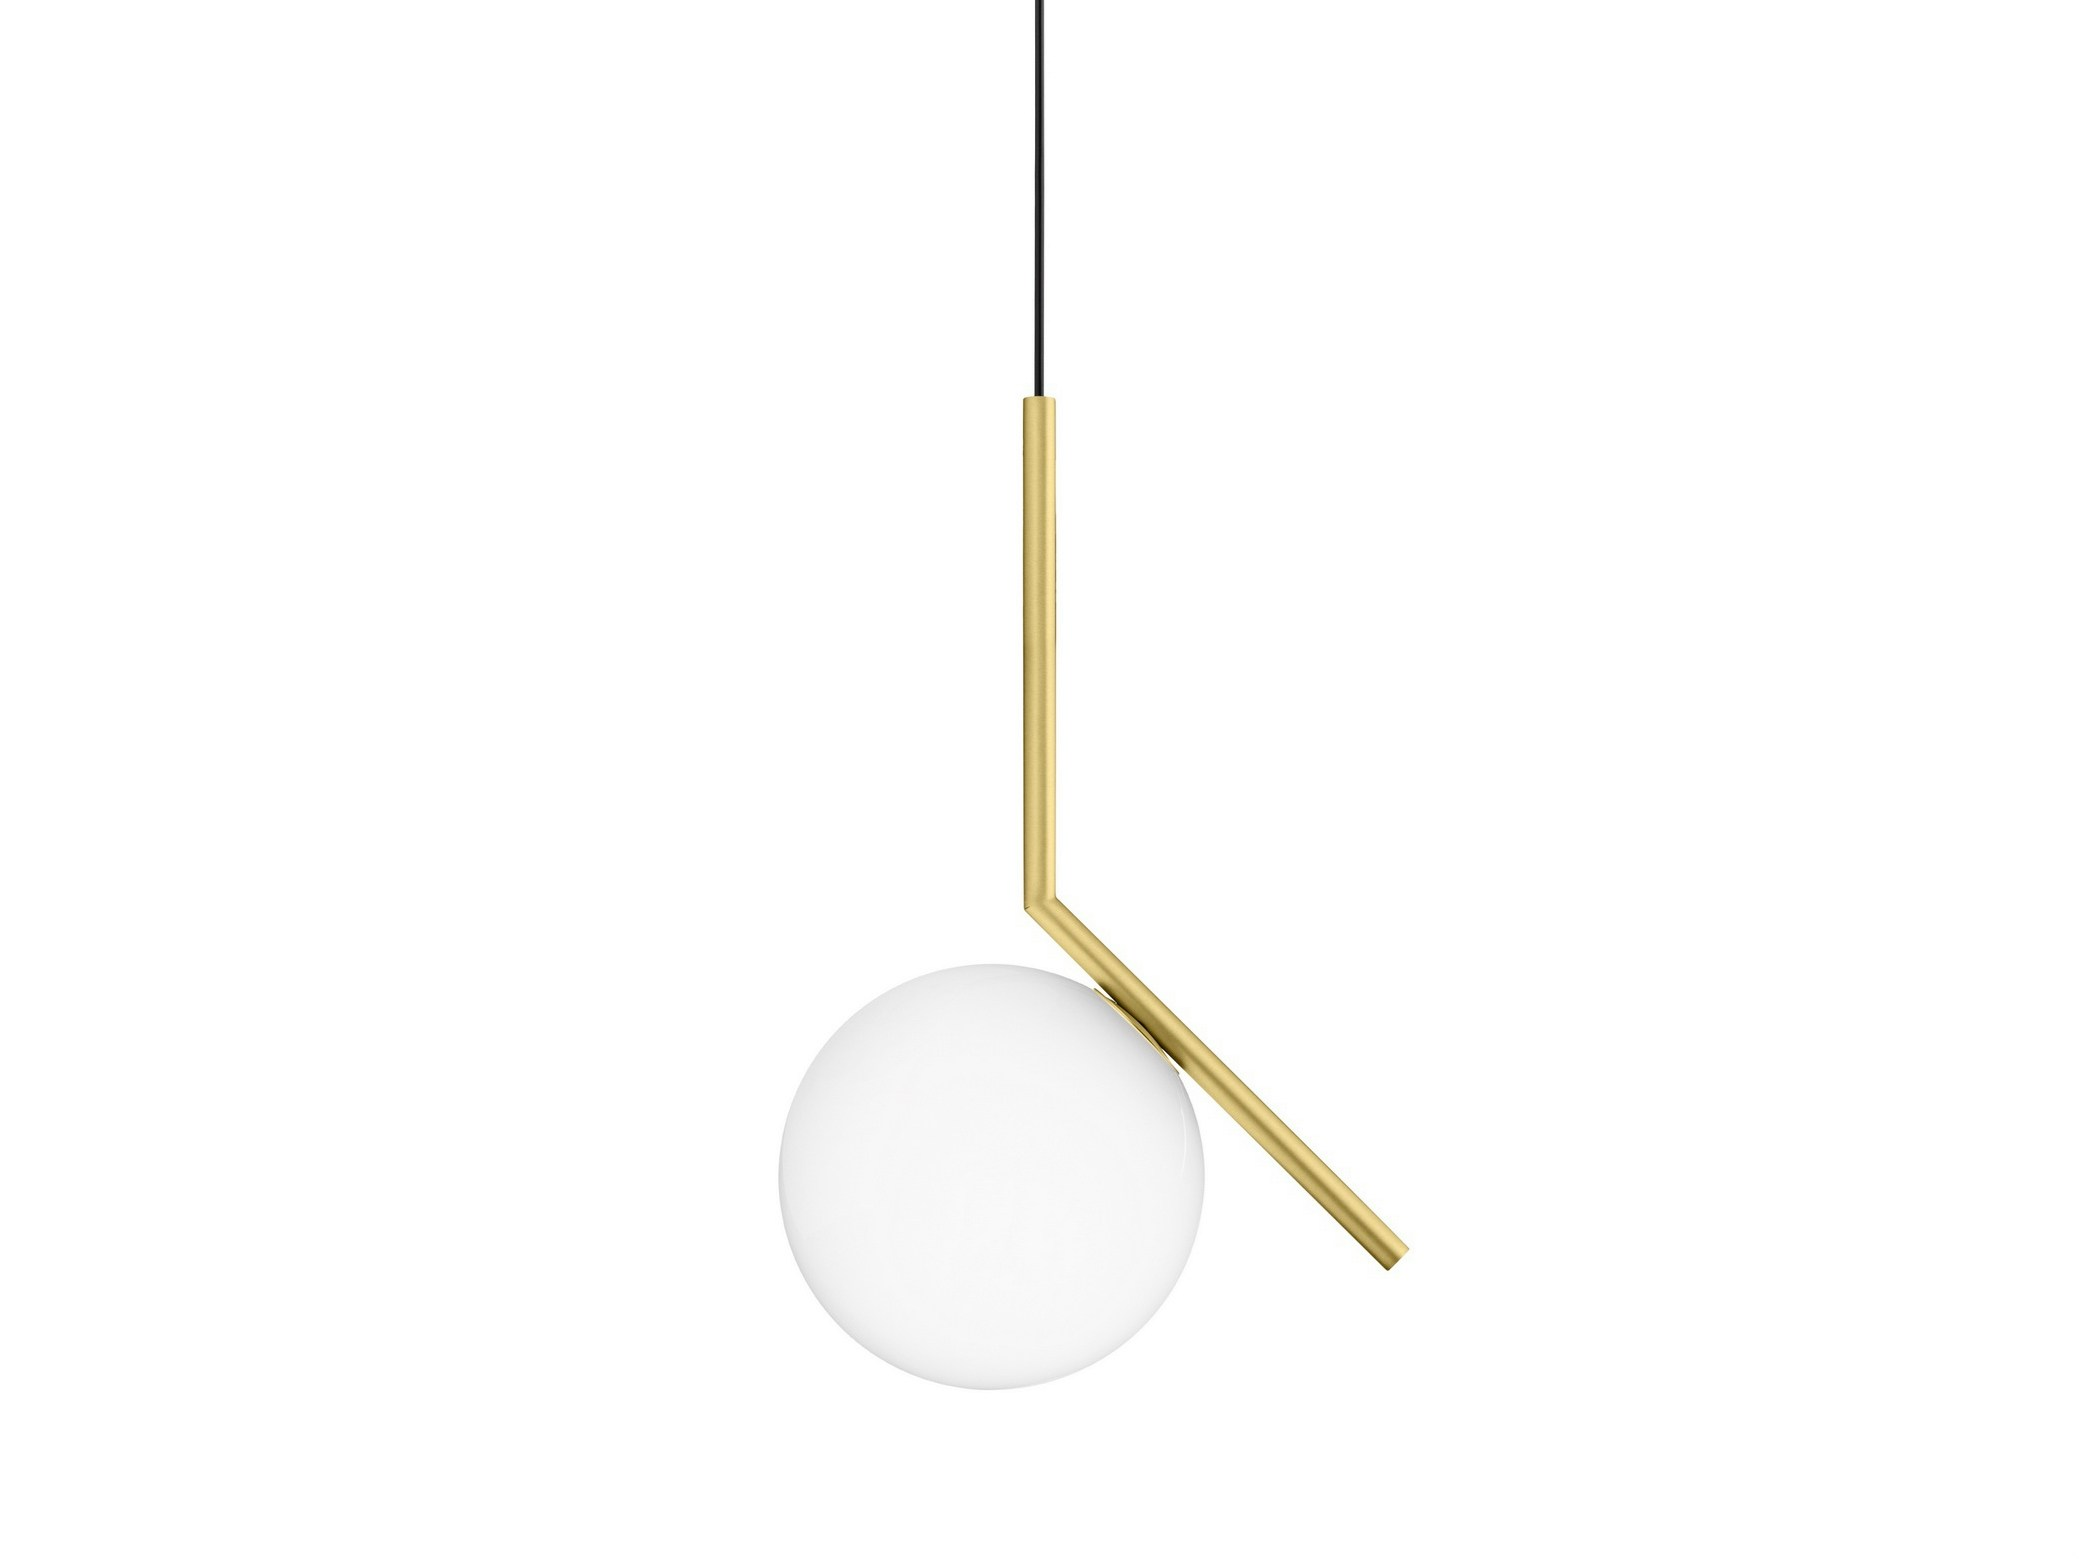 Floss Verlichting Brass Pendant Lamp Ic Lights S1 By Flos Design Michael